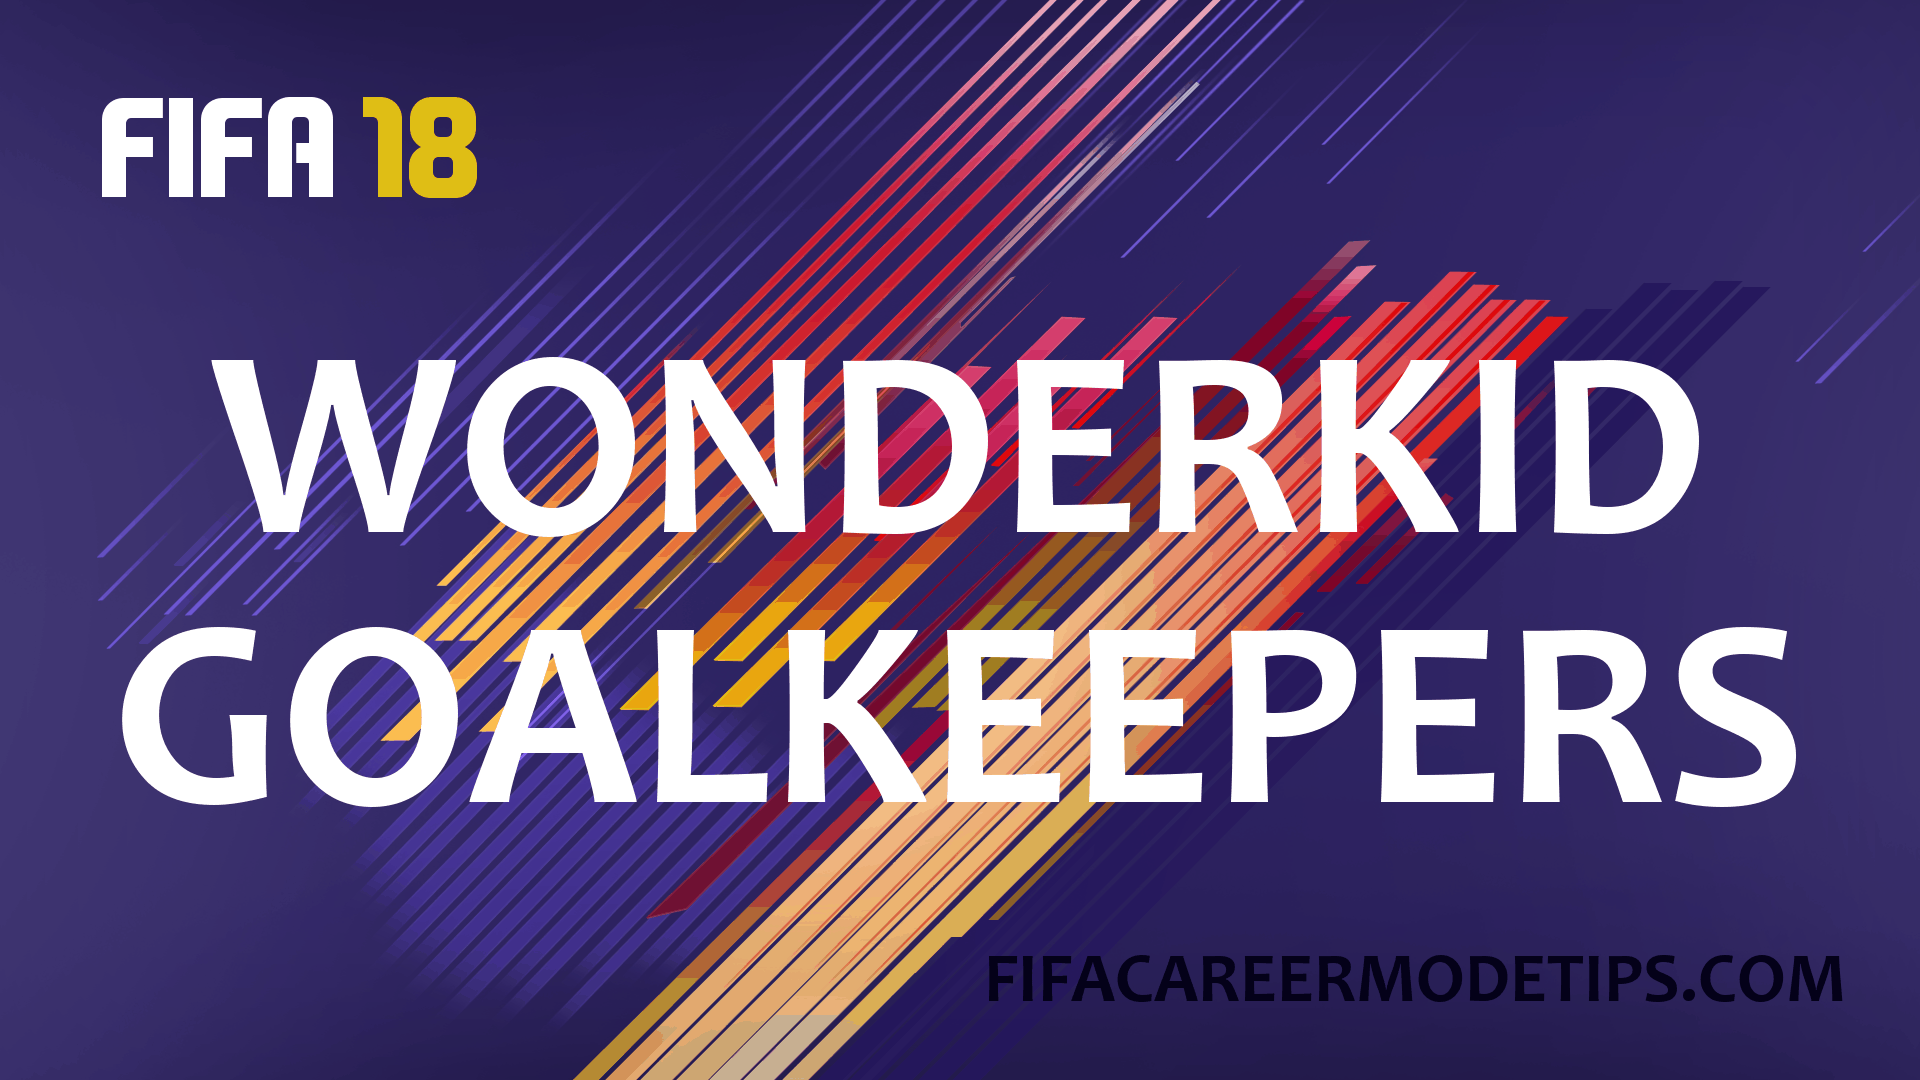 Wonderkid Goalkeepers